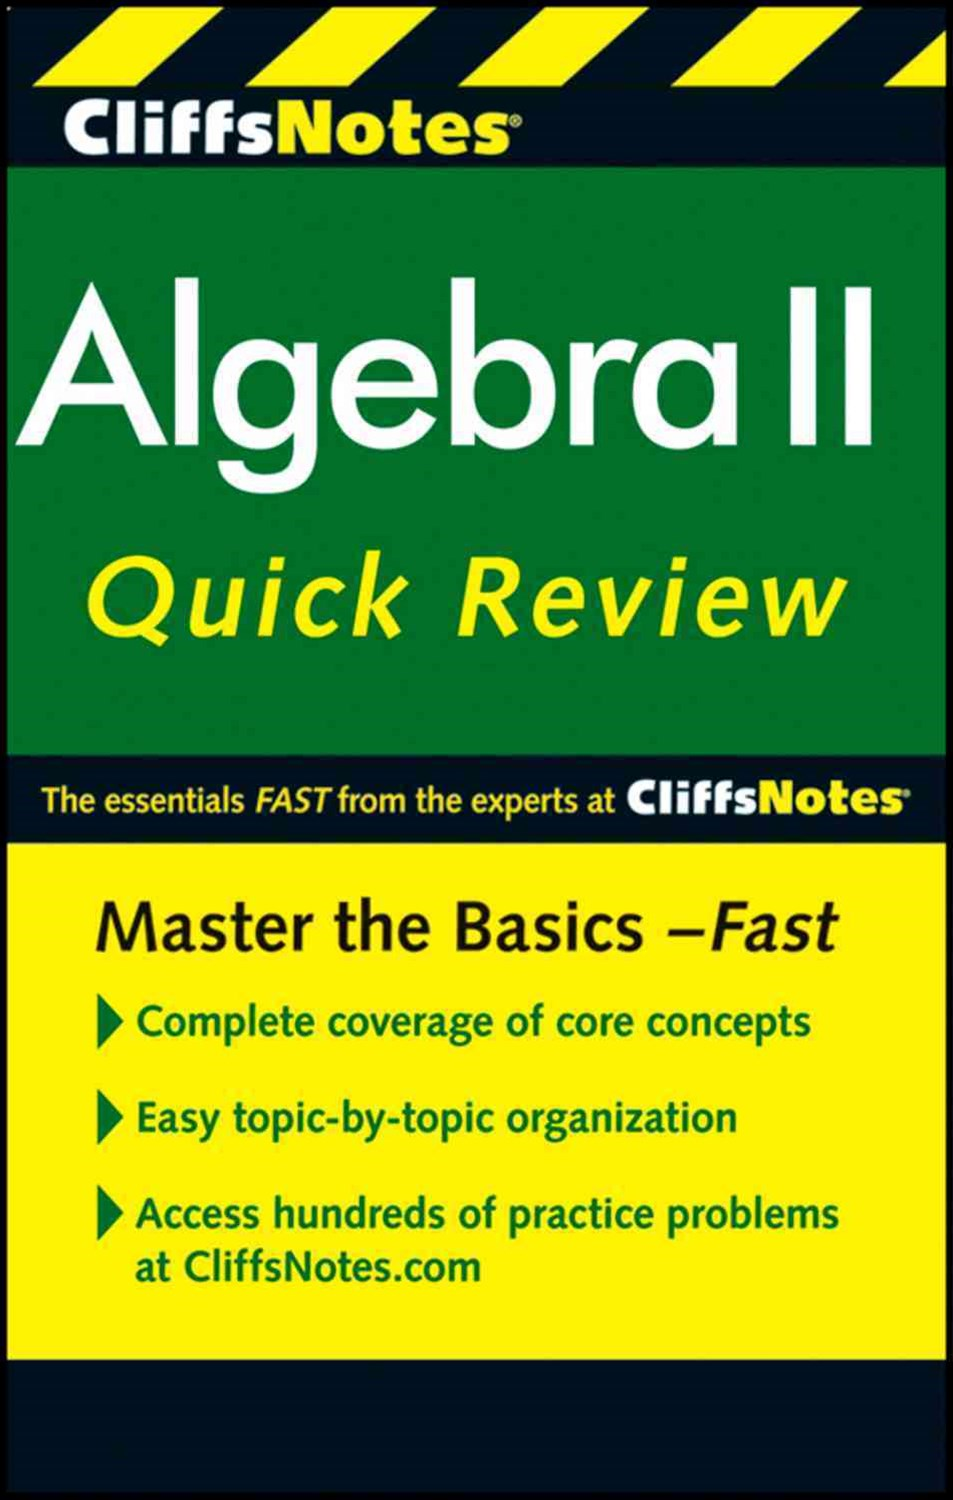 CliffsNotes Algebra II QuickReview: 2nd Edition